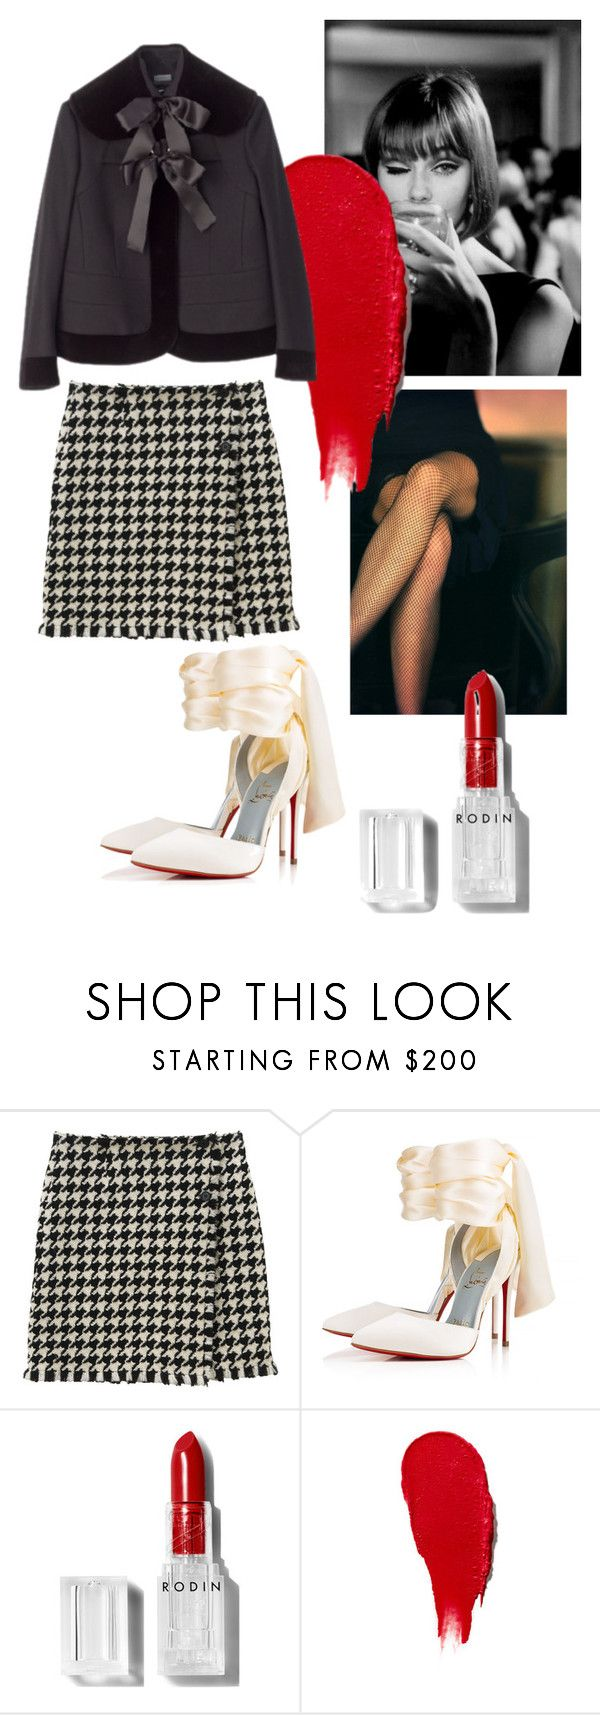 """Untitled #245"" by gina-stewart75 on Polyvore featuring Christian Louboutin and Rodin"